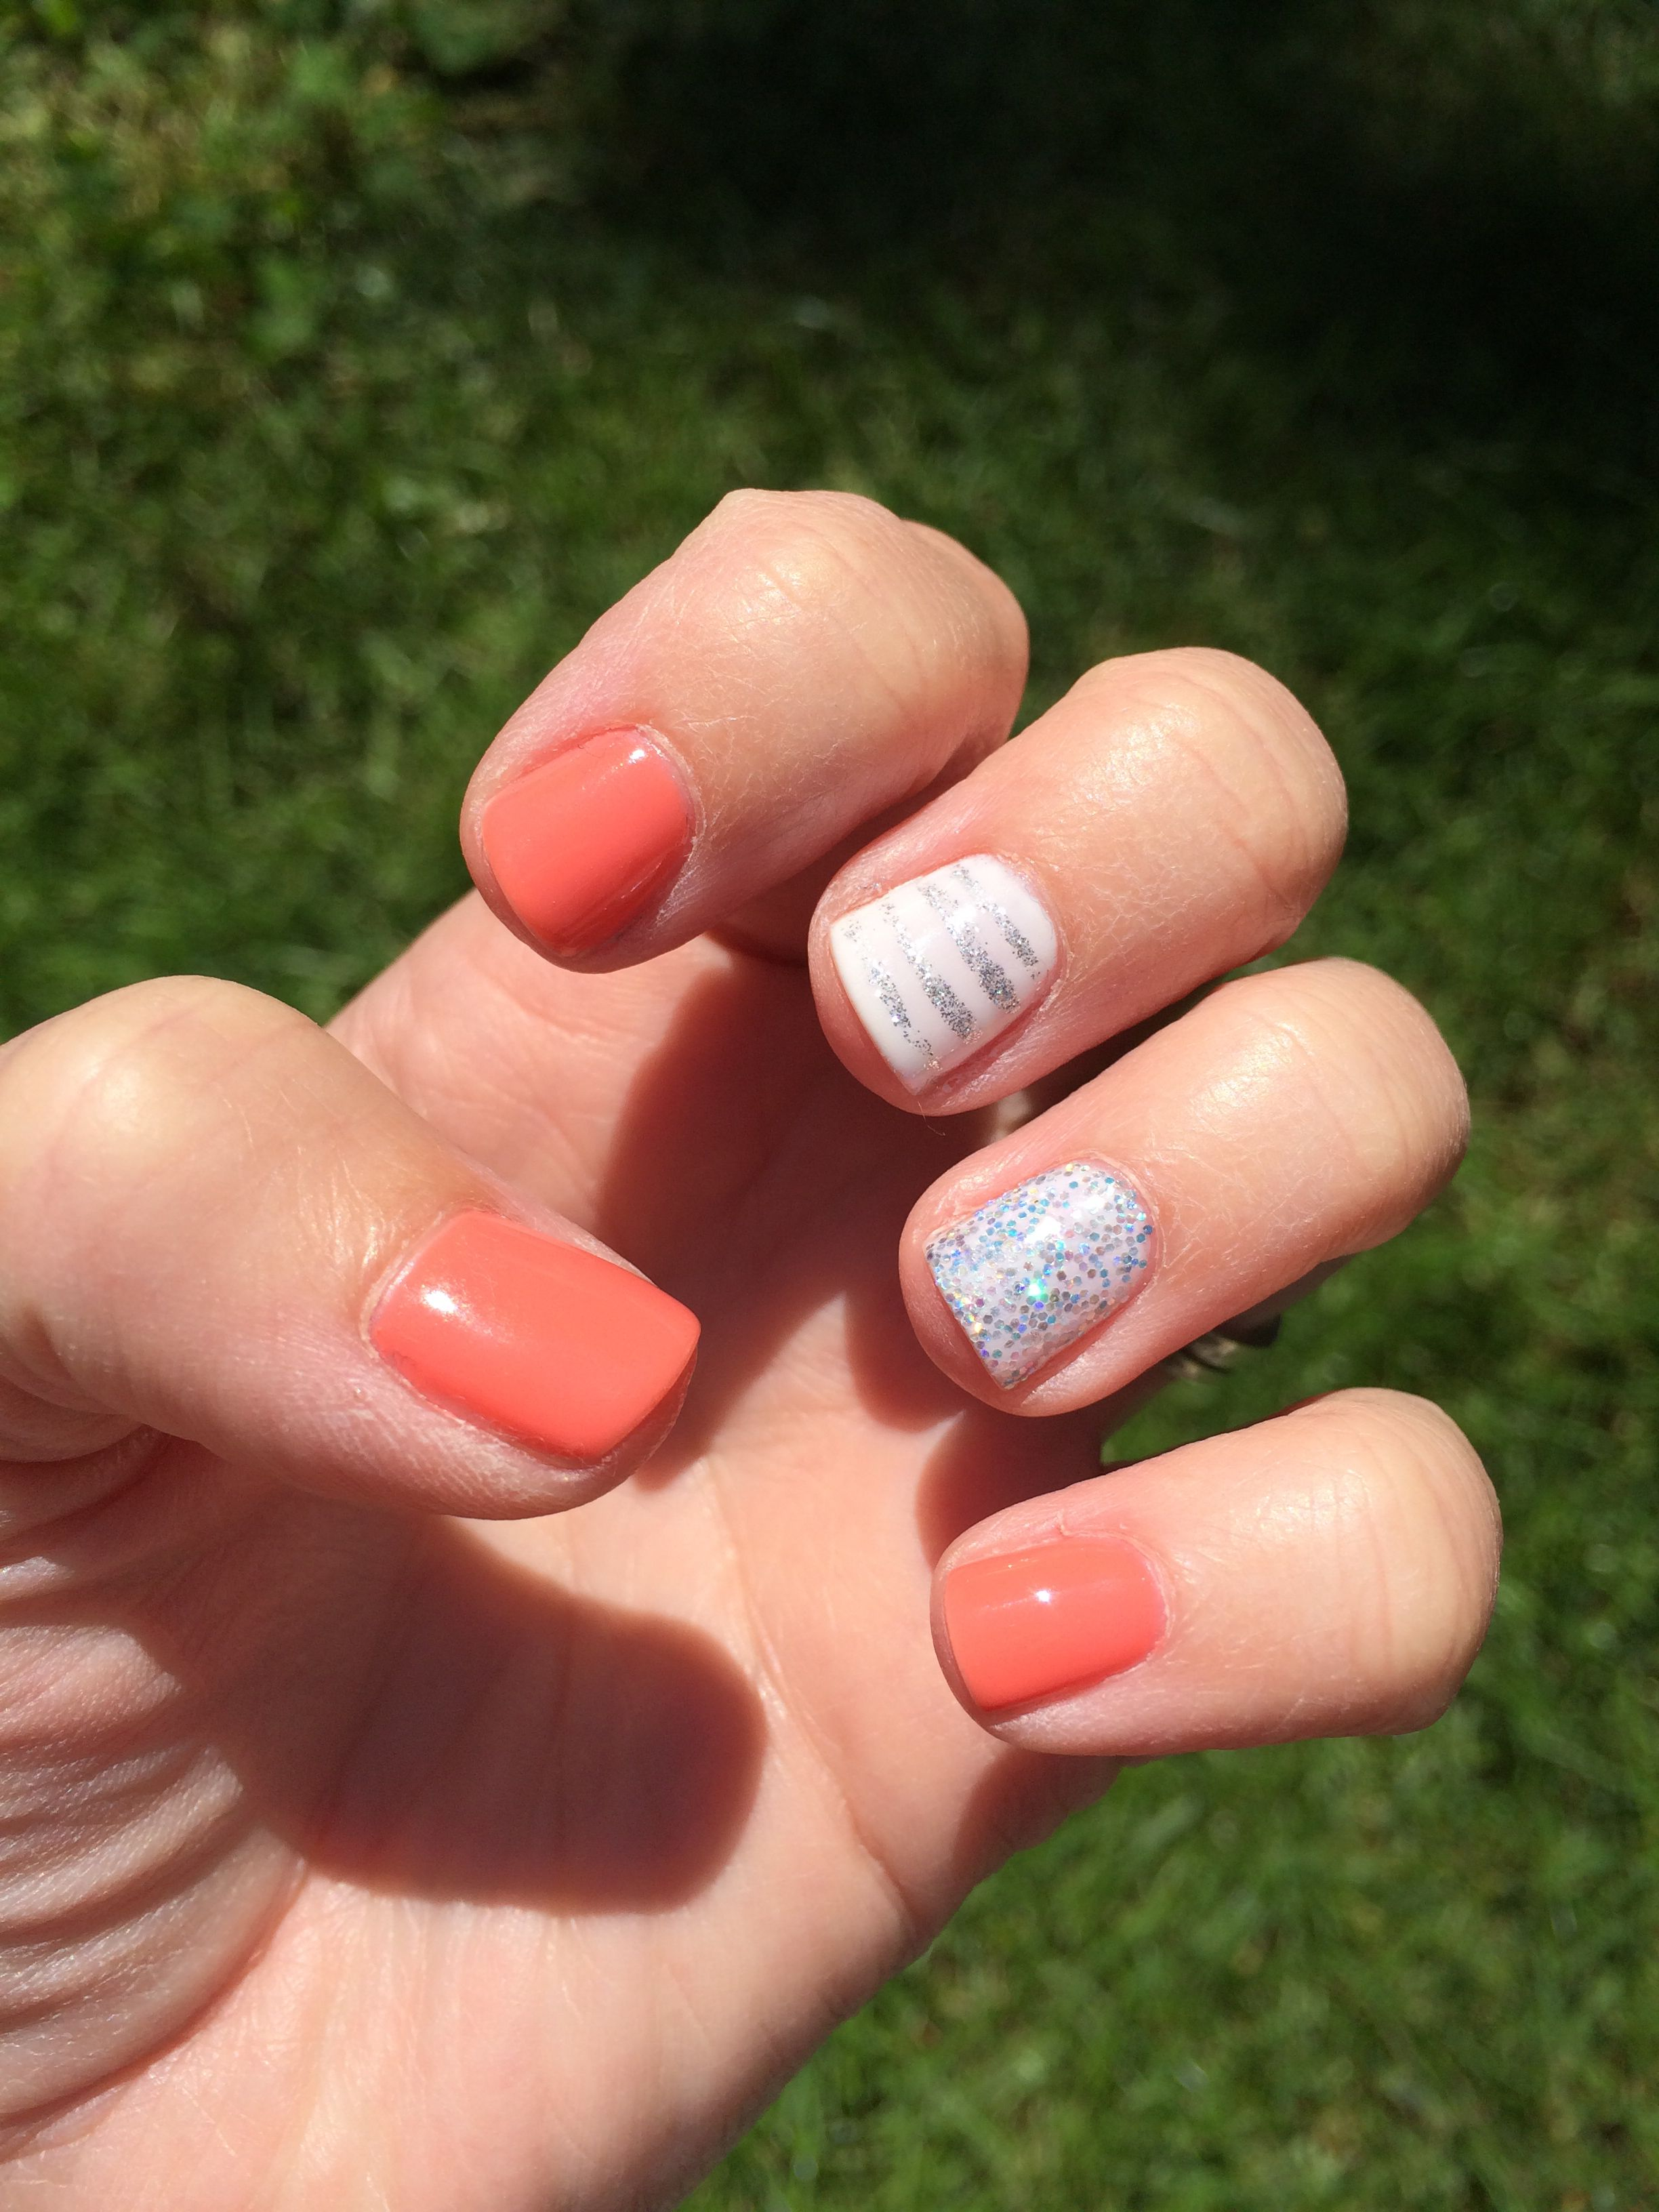 Coral white and sparkles all diy with my shellac kit at home all diy with my shellac kit at home solutioingenieria Choice Image